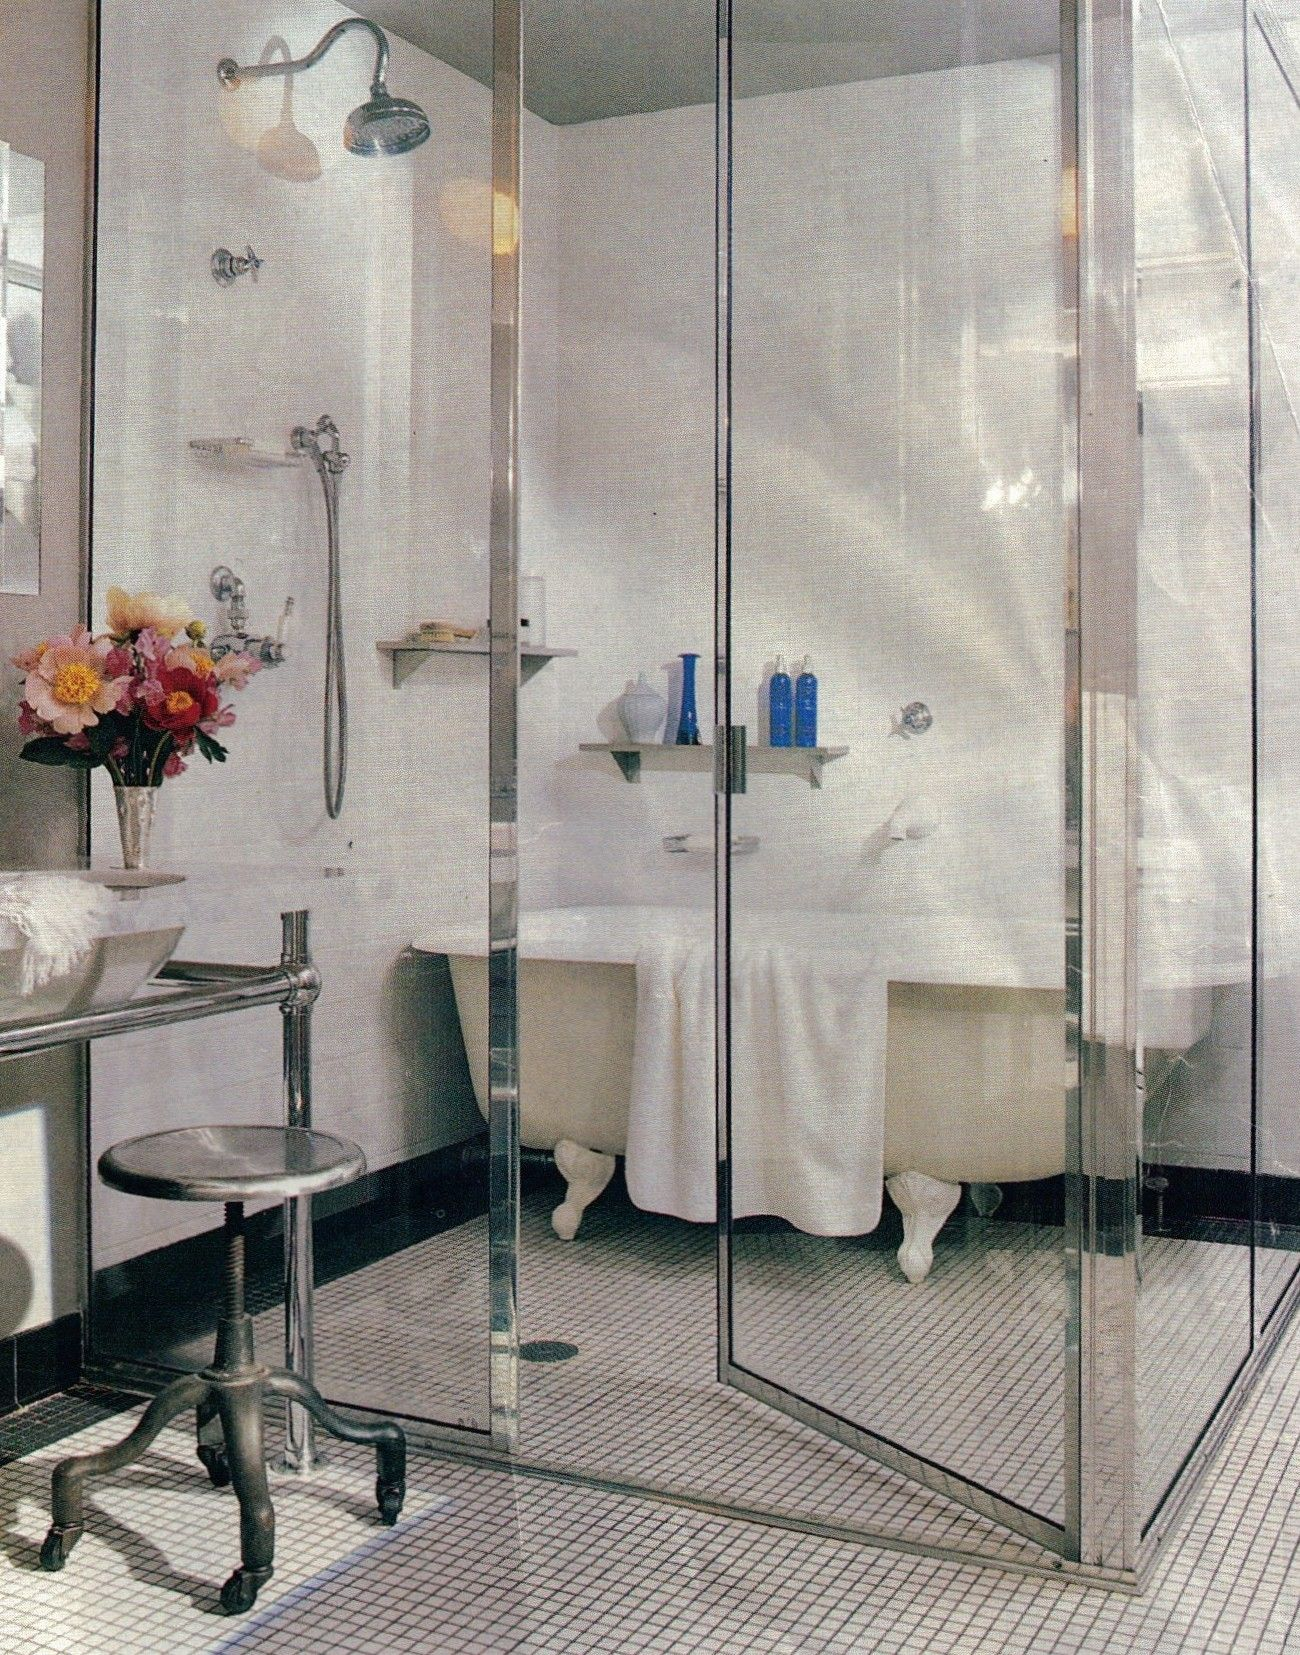 room within a room...floor to ceiling glass surround spacious shower ...